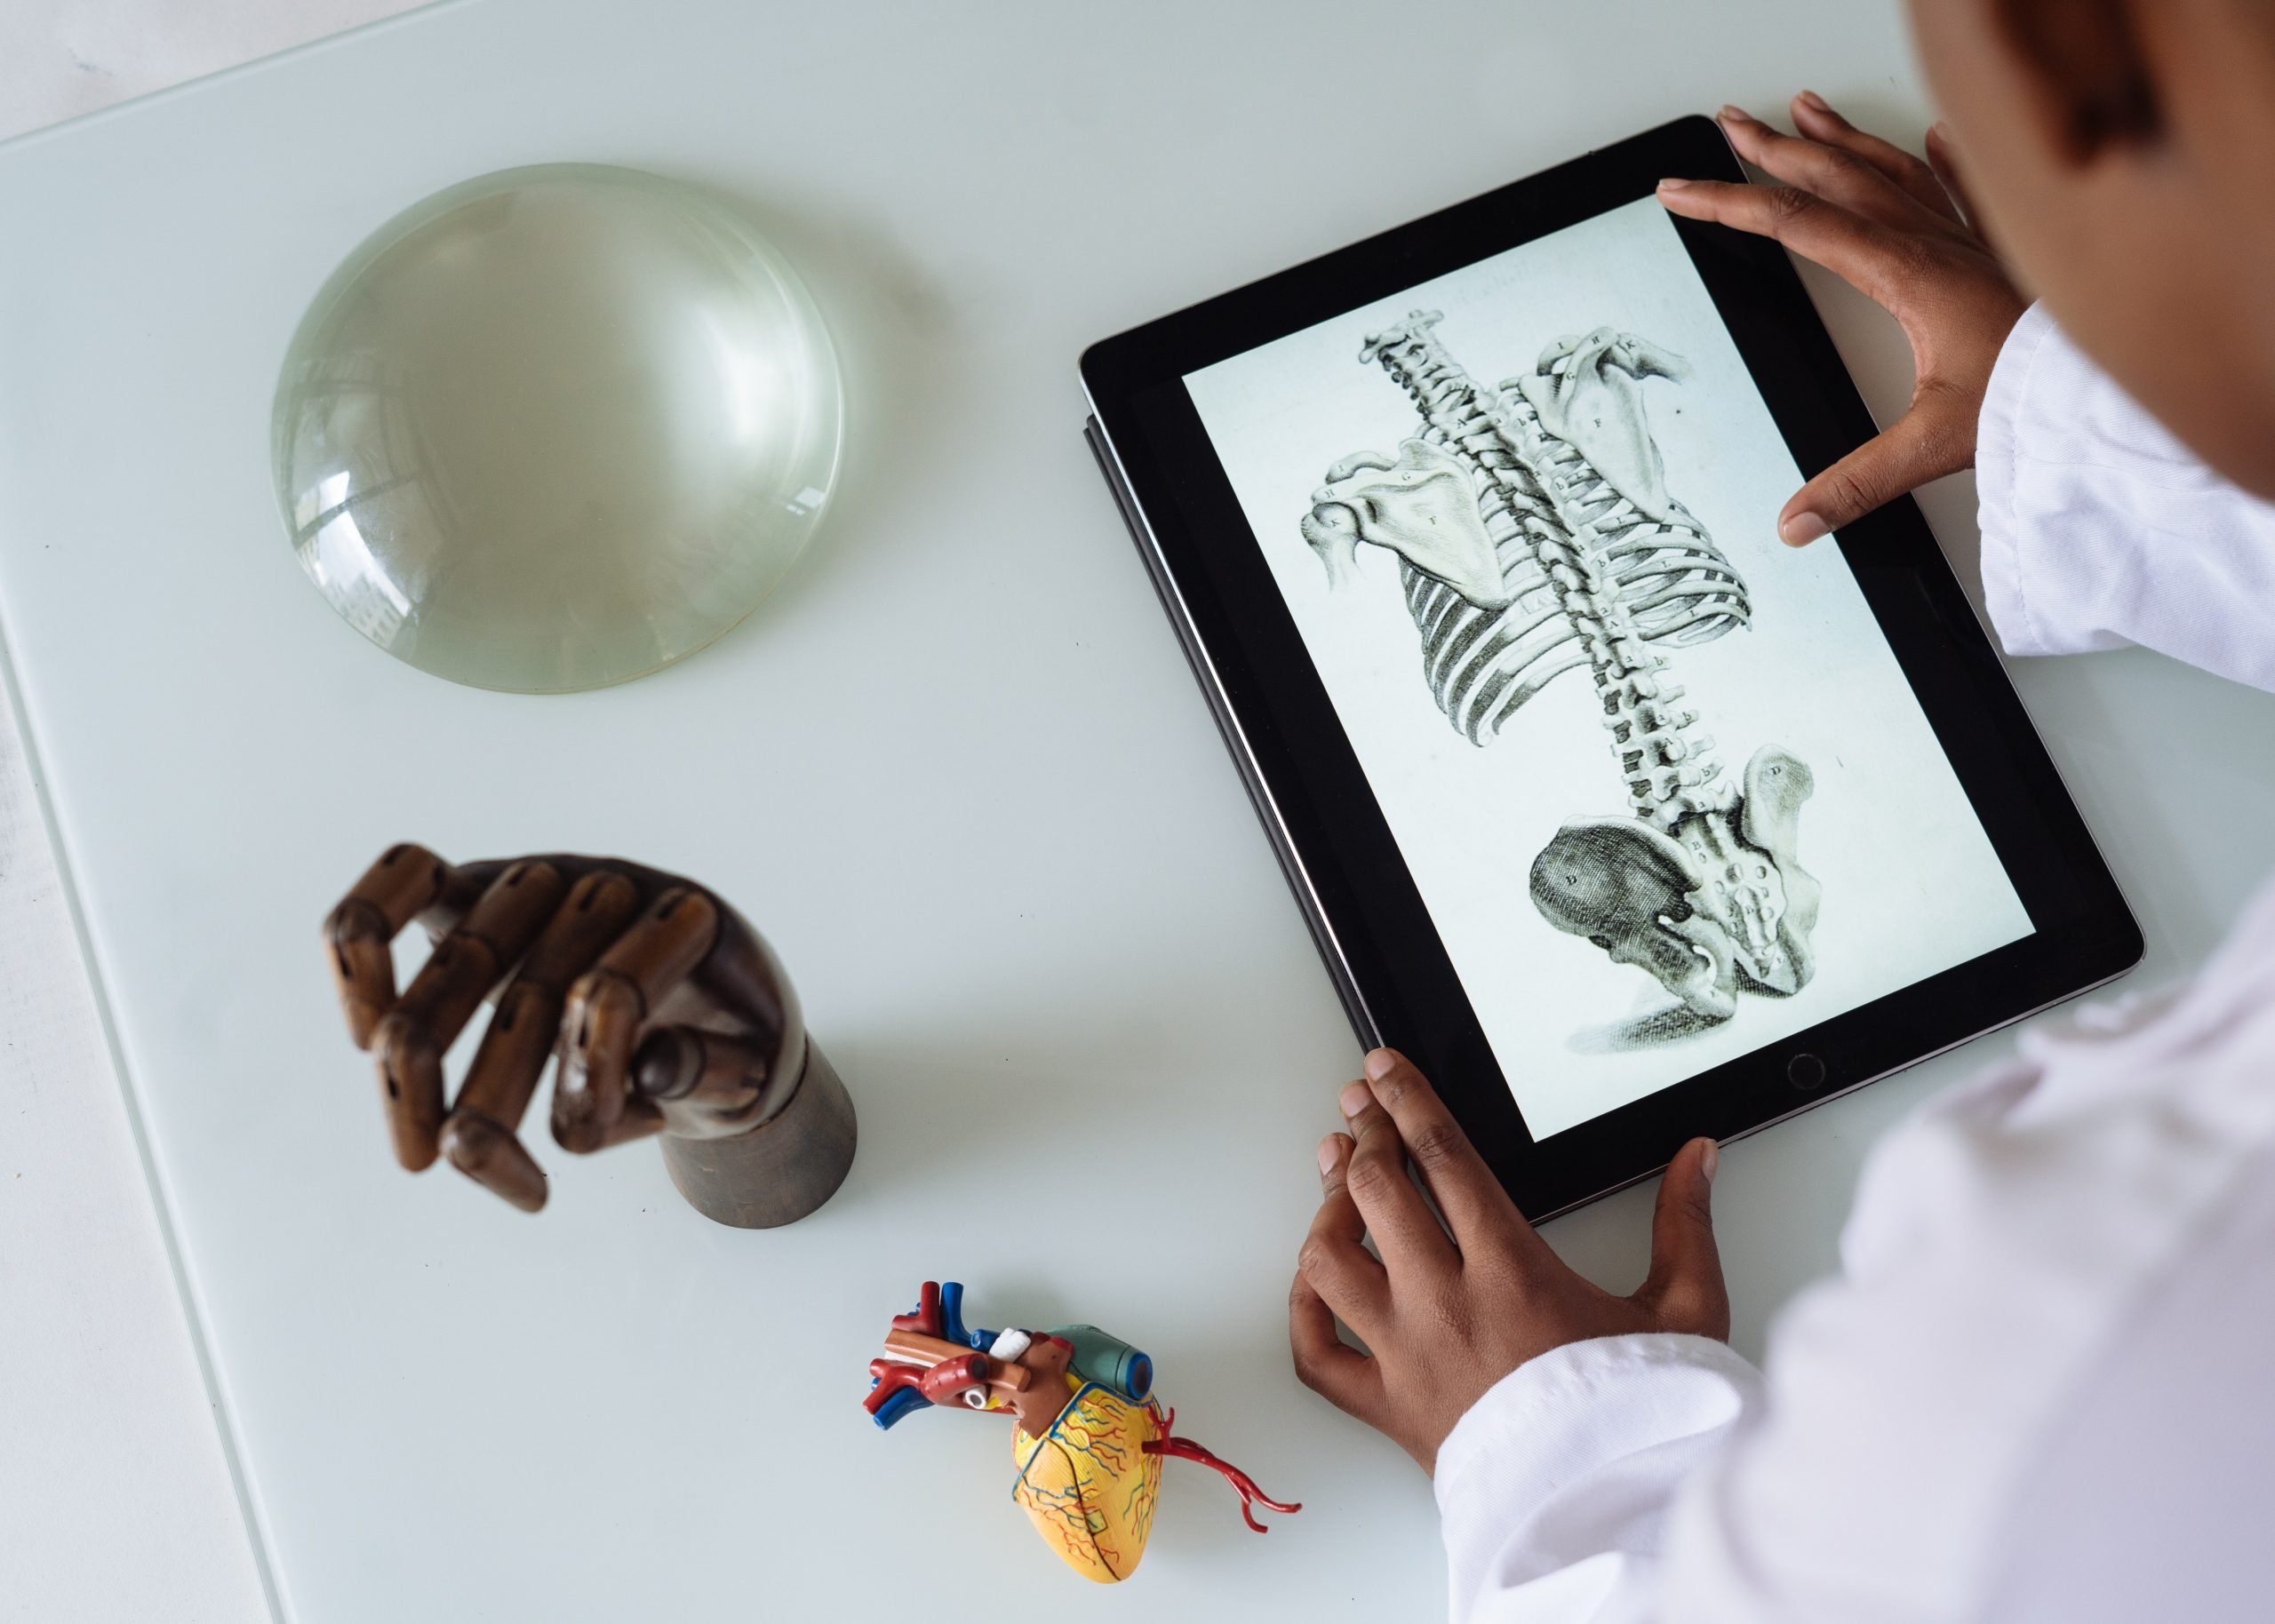 Student reviewing images of a skeleton on an iPad